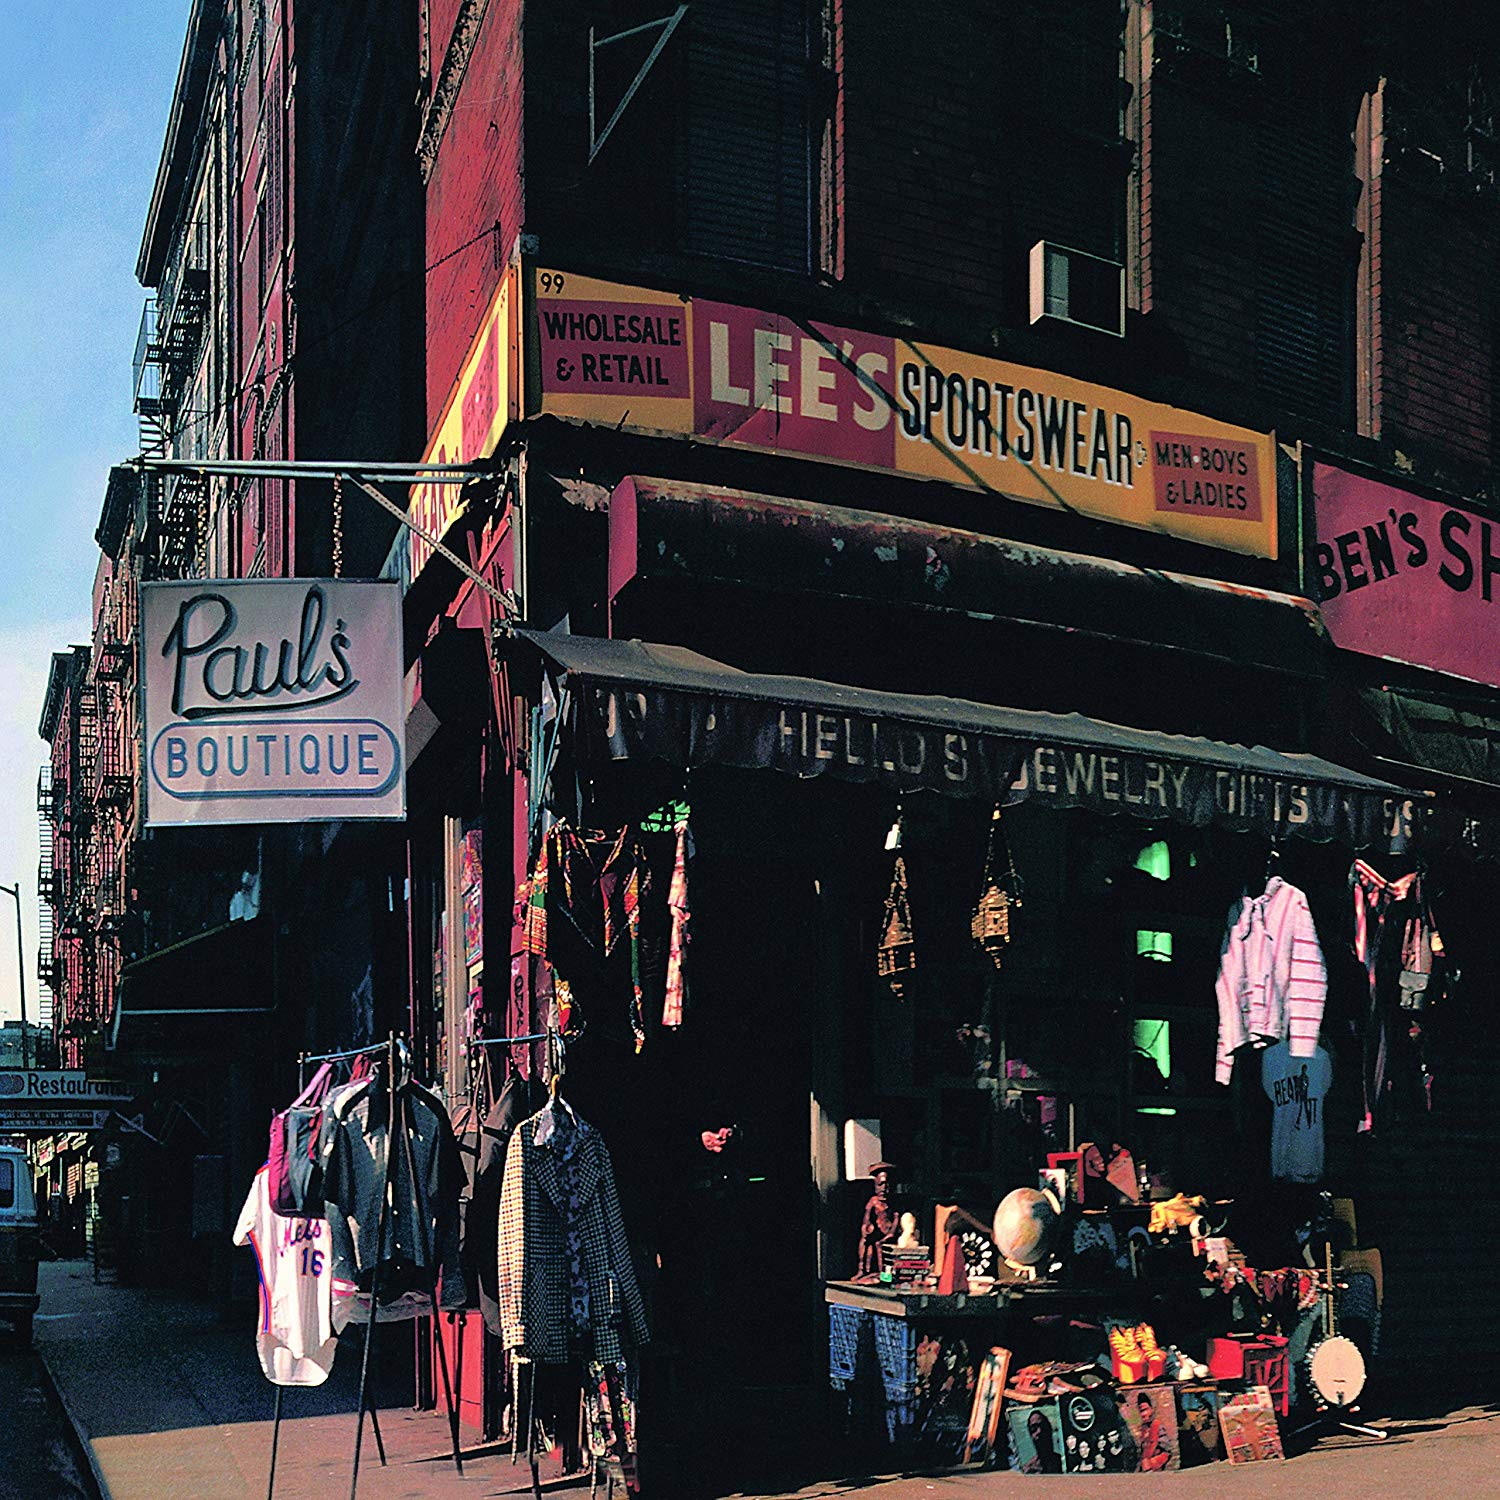 BEASTIE BOYS - PAUL'S BOUTIQUE $29 Paul'S Boutique 20Th Anniversary Edition @ 1989 Capitol Records